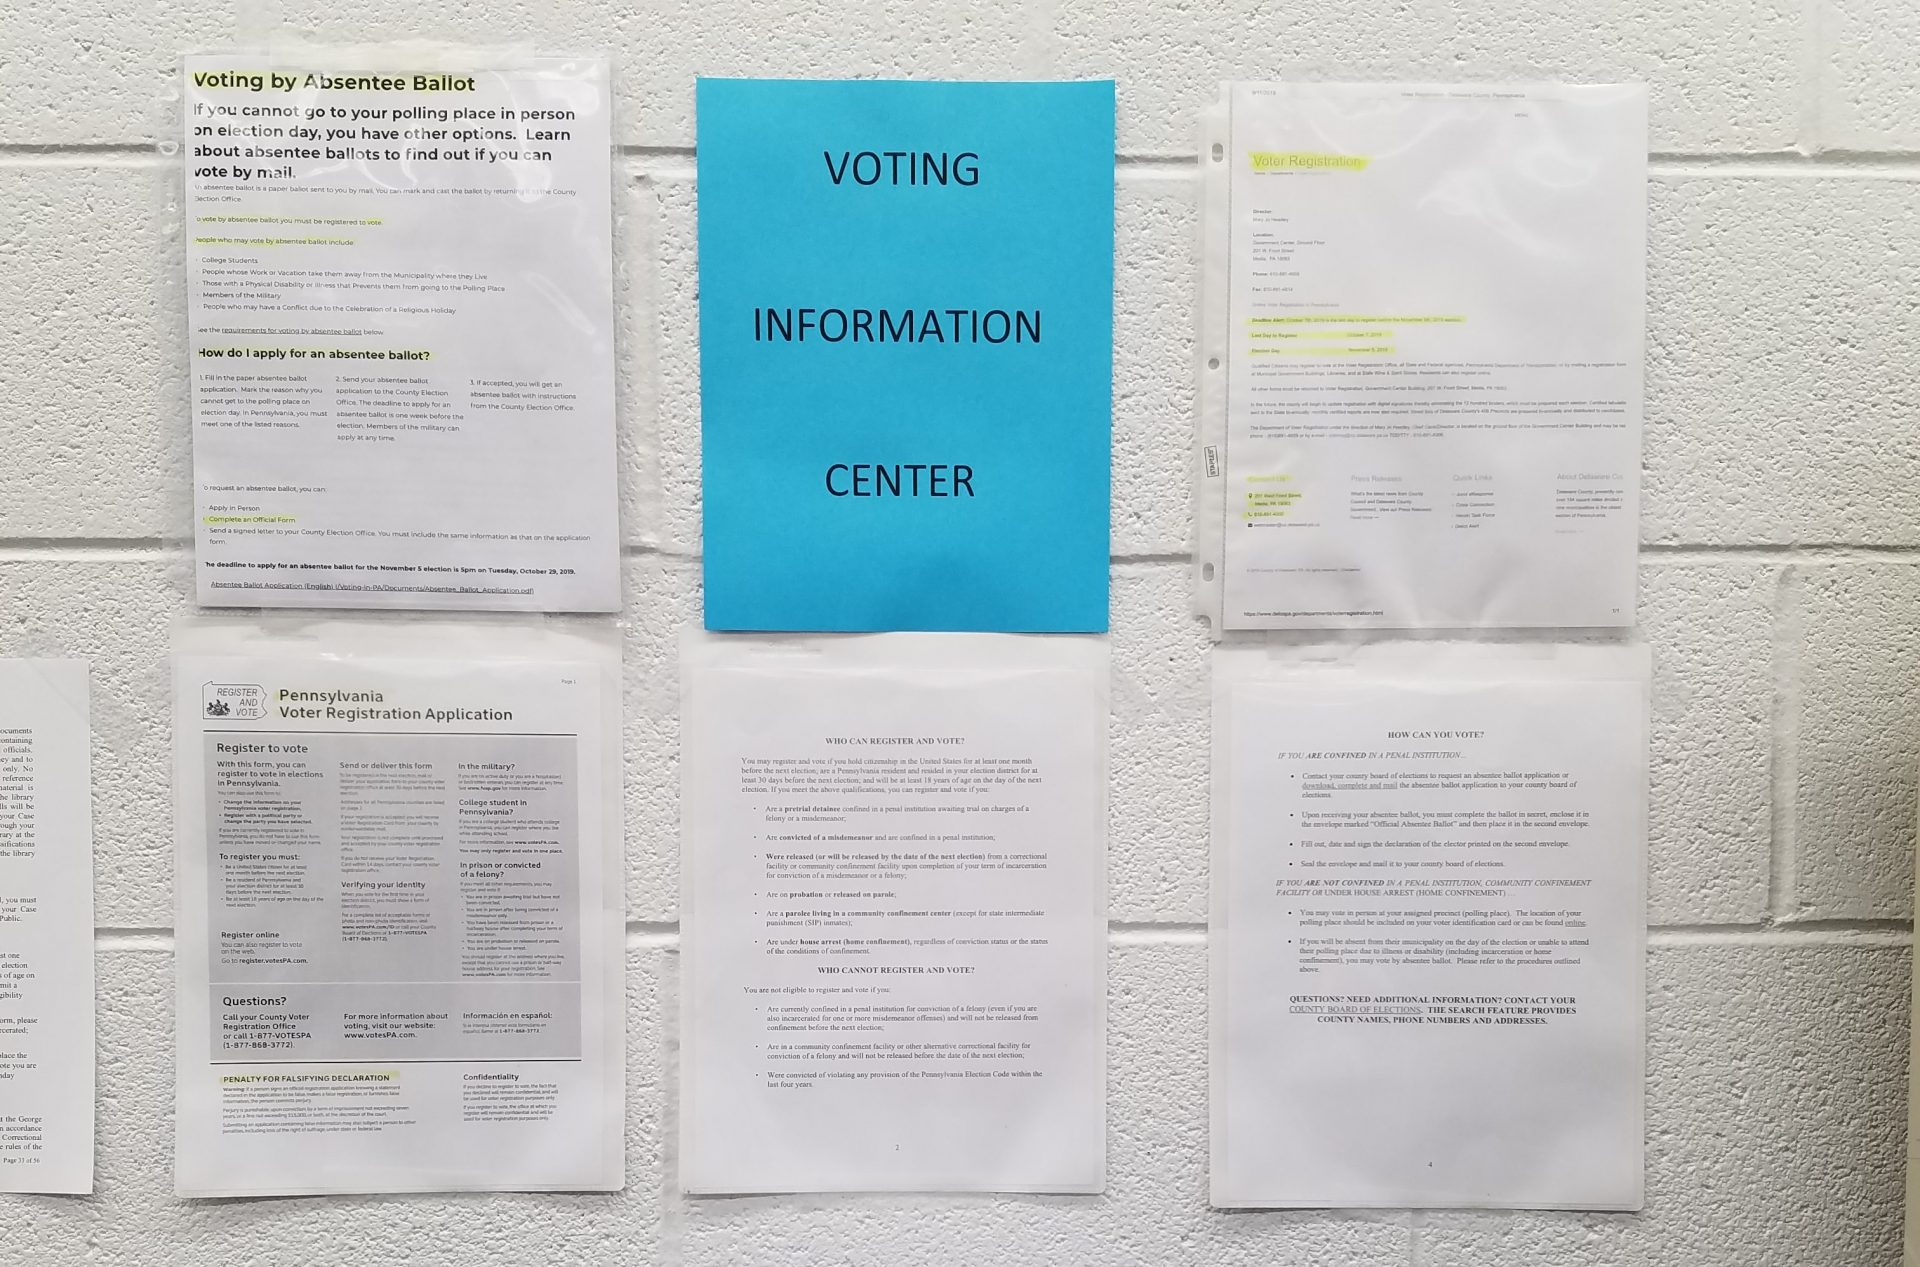 Tens of thousands of Pennsylvanians in jail are eligible to vote, but will they?